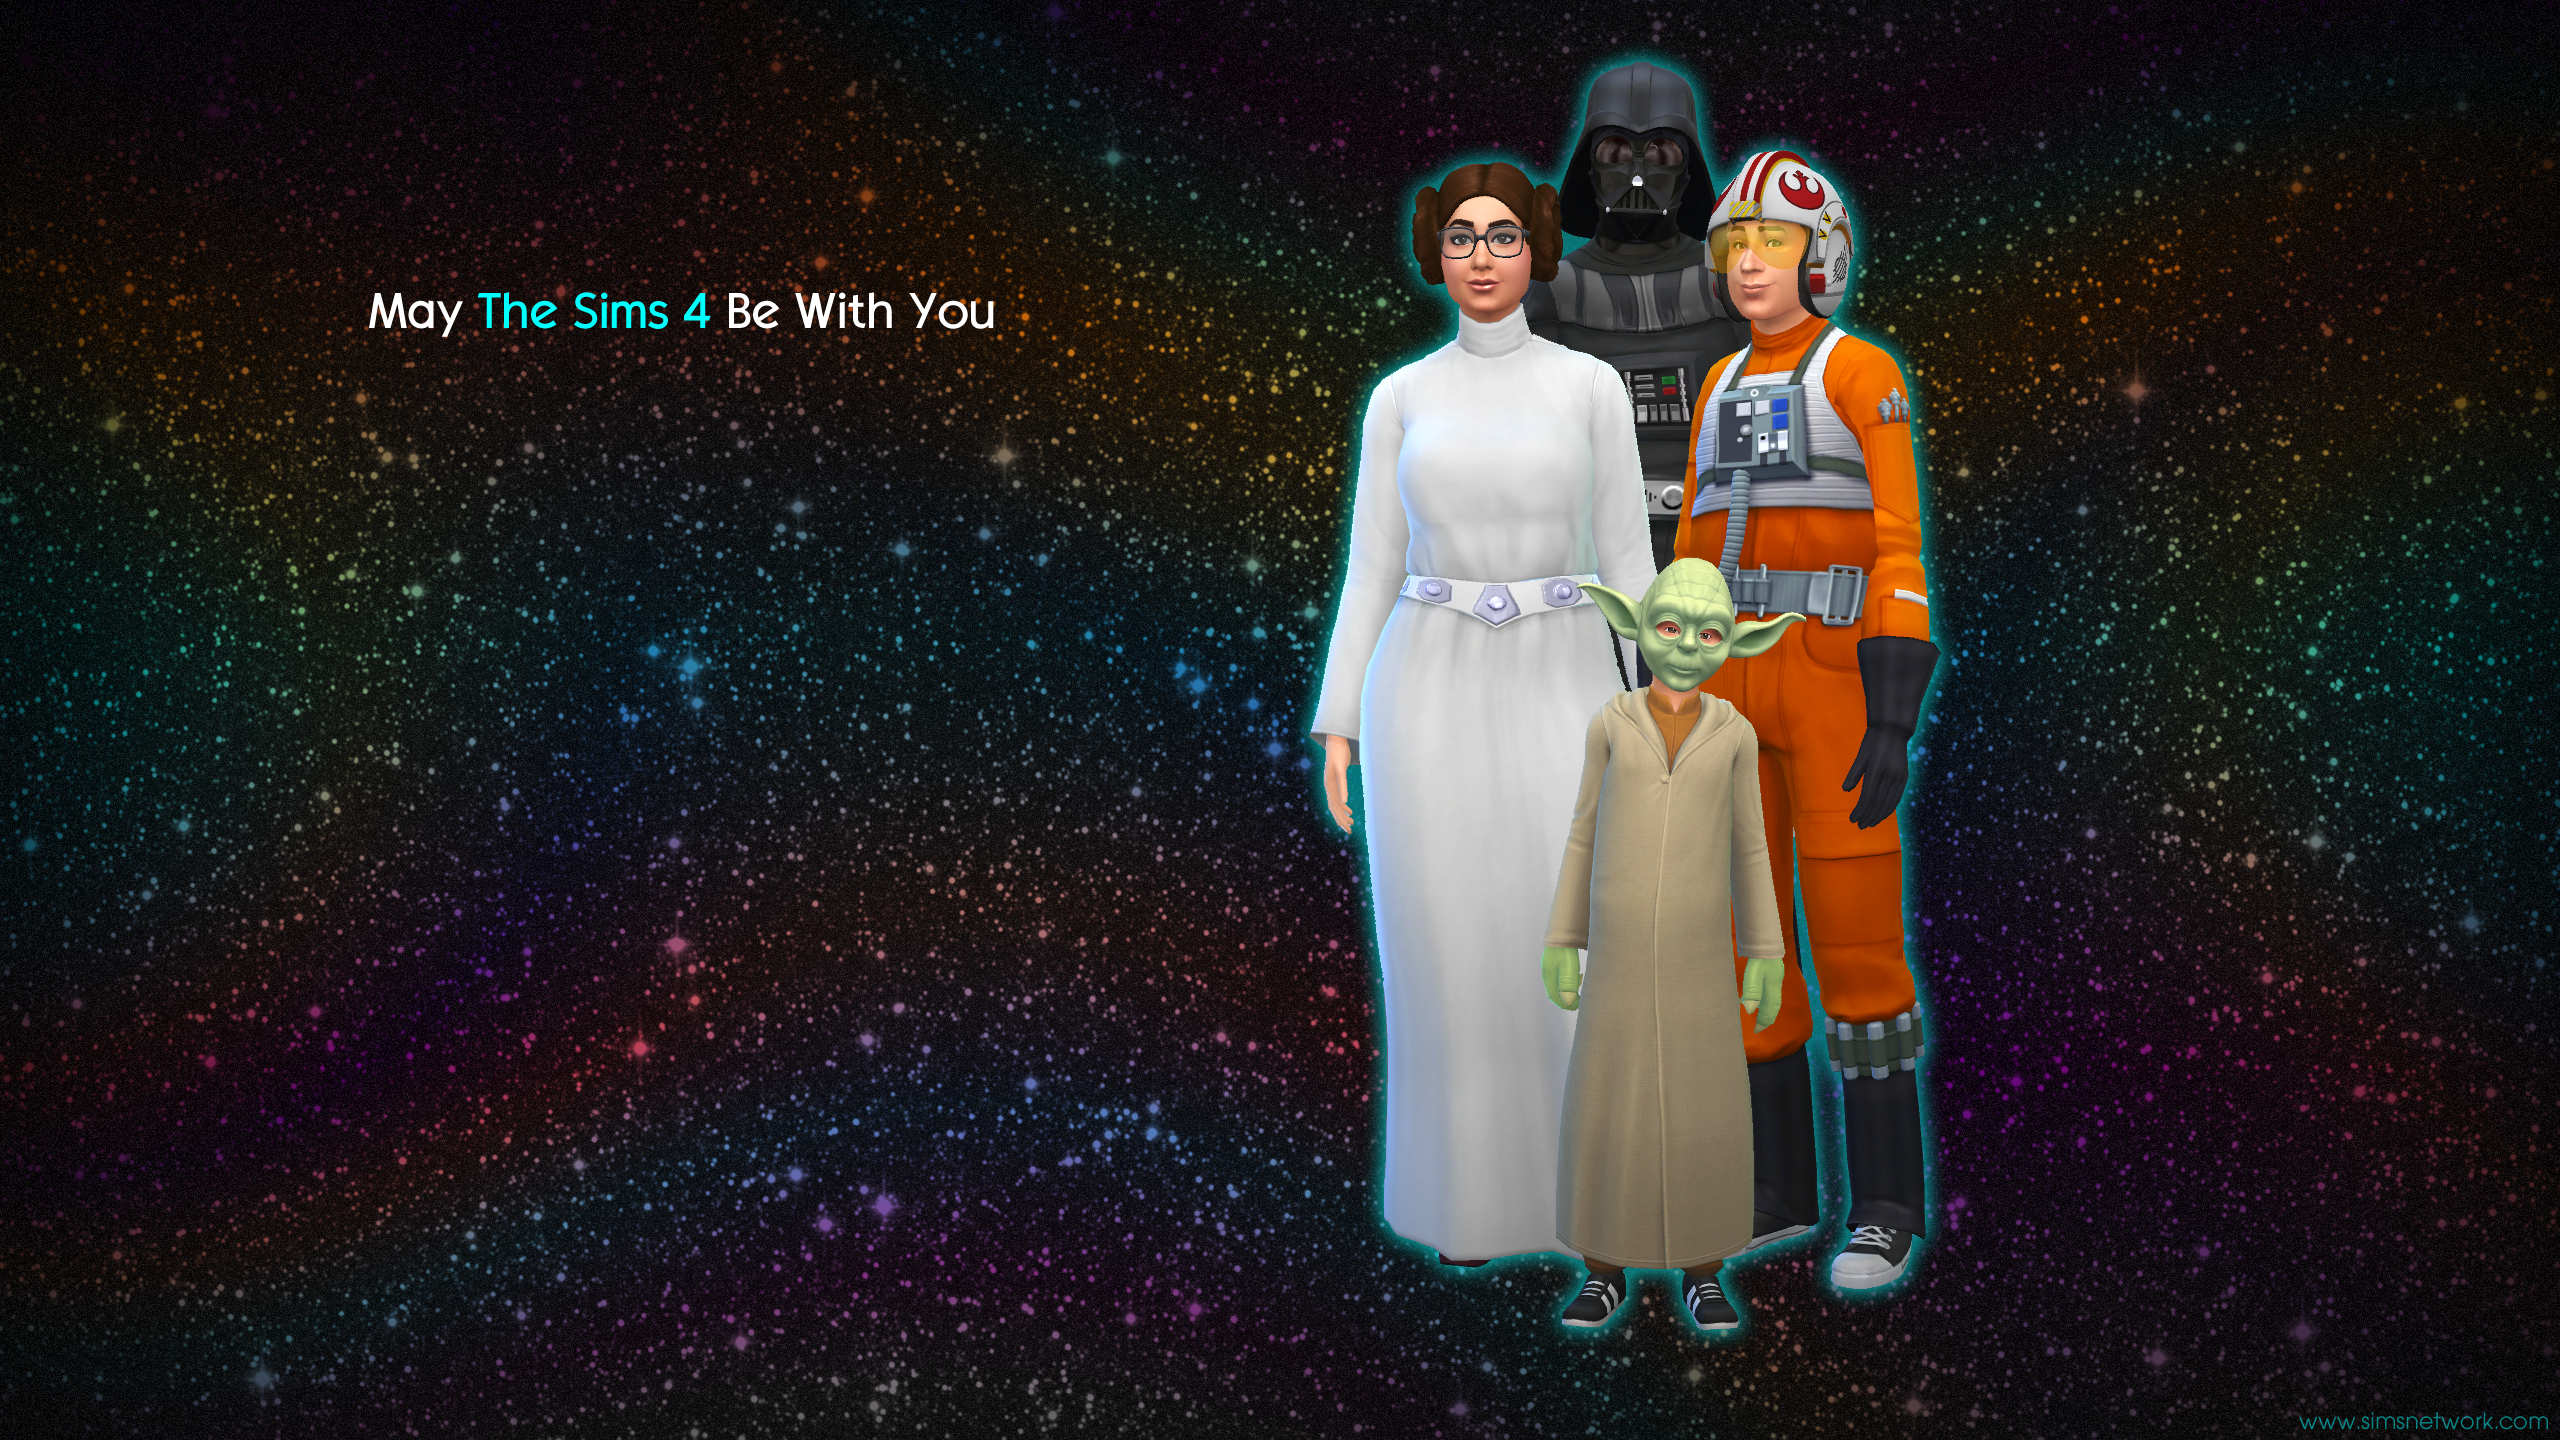 may the sims 4 be with you wallpapers